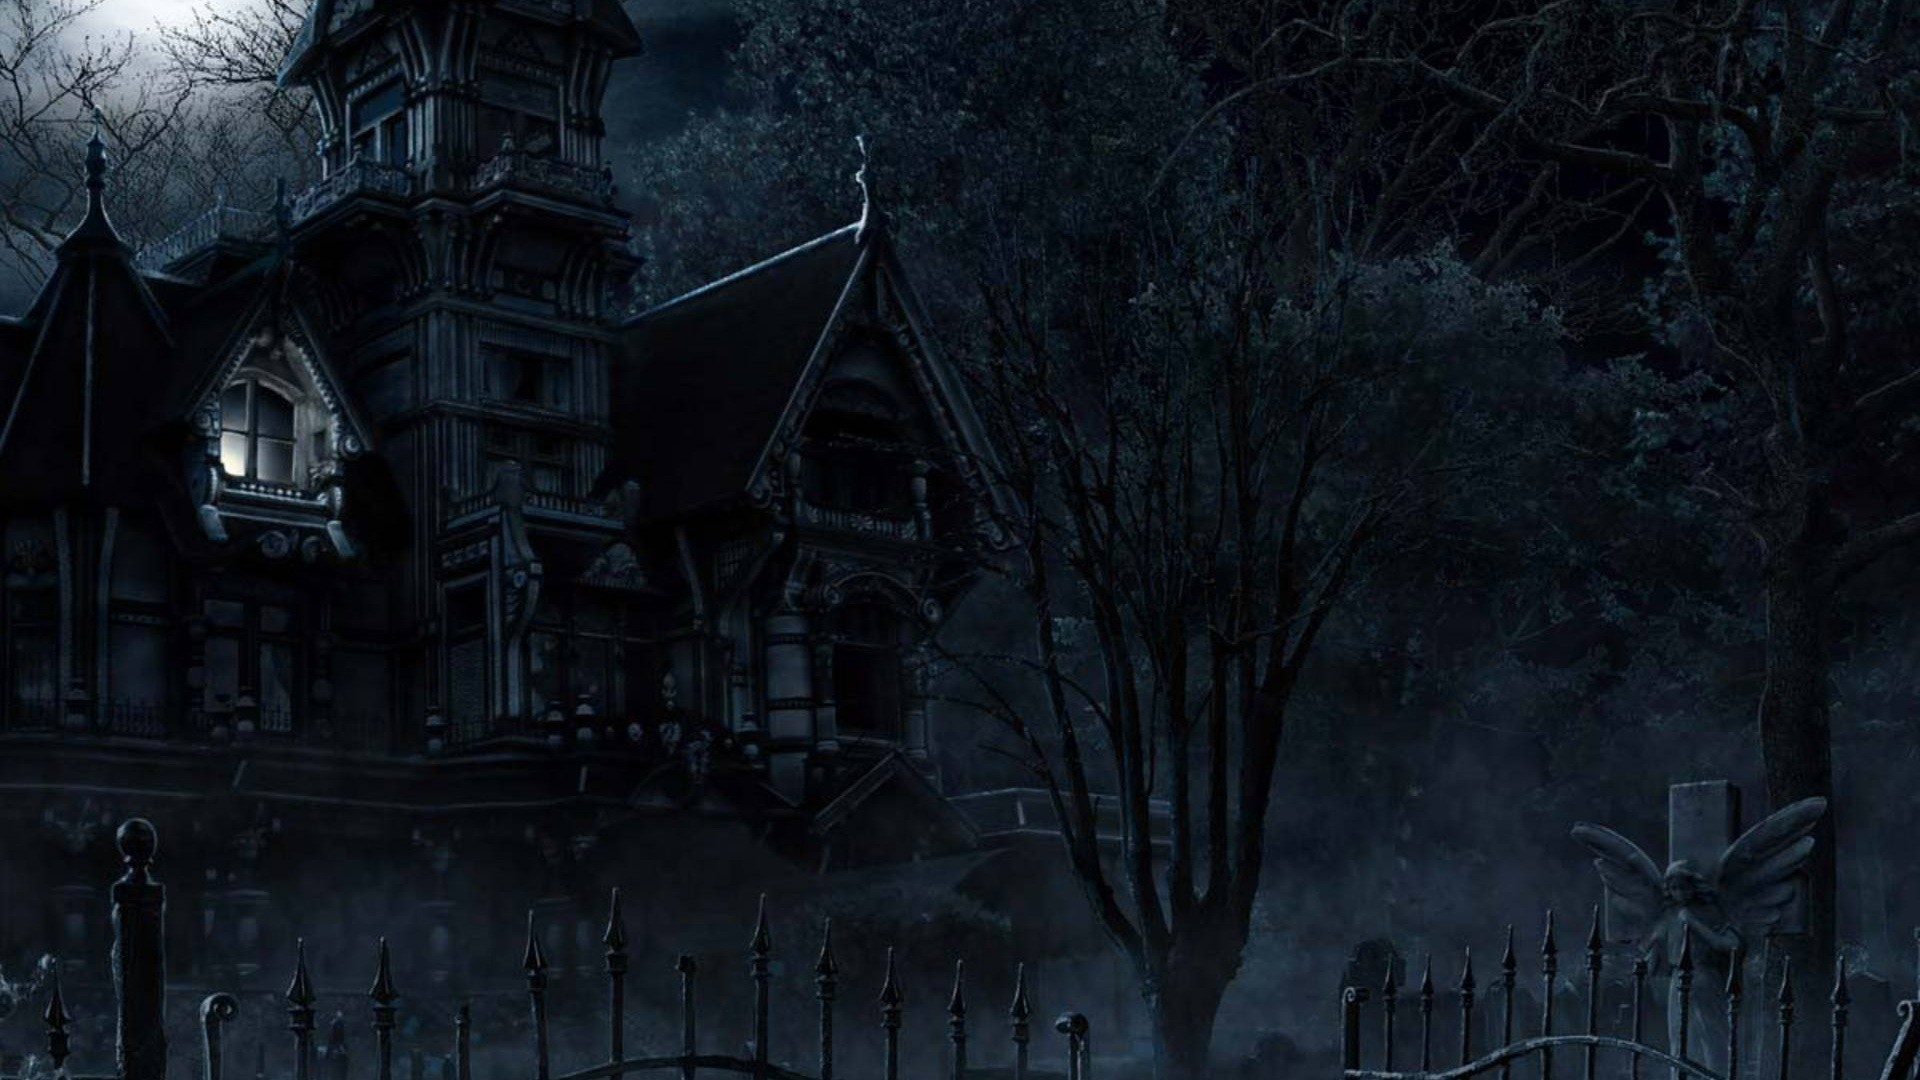 1920x1080 Halloween Wallpapers 82, Free Wallpapers, Free Desktop Wallpapers, HD .